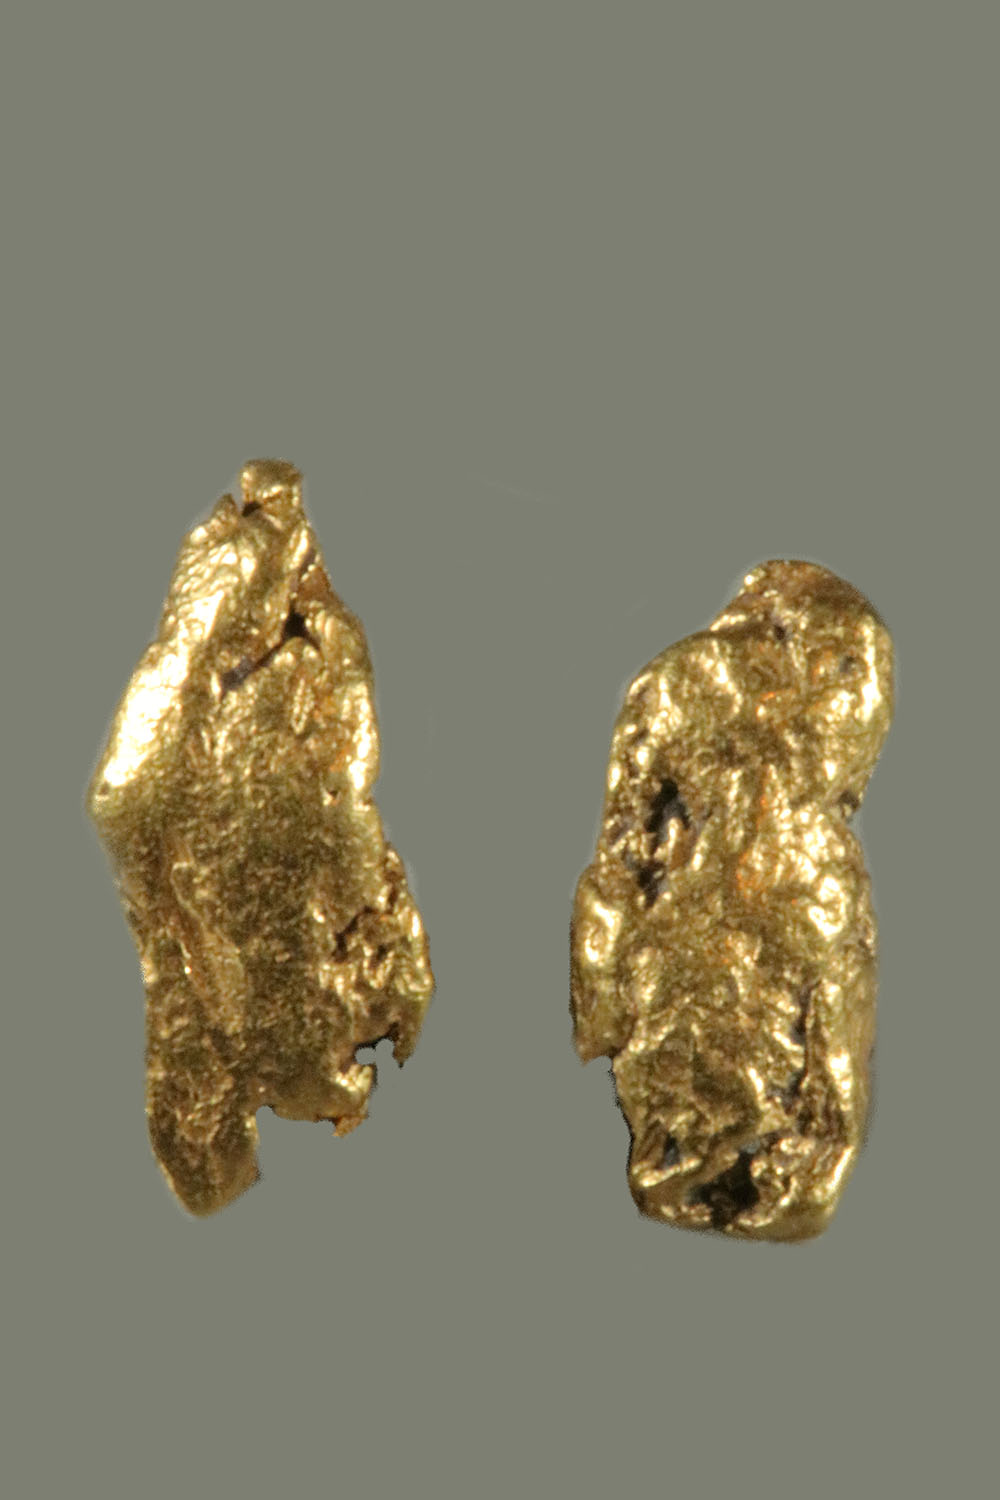 A Great Pair of Gold Nuggets from the Bering Sea